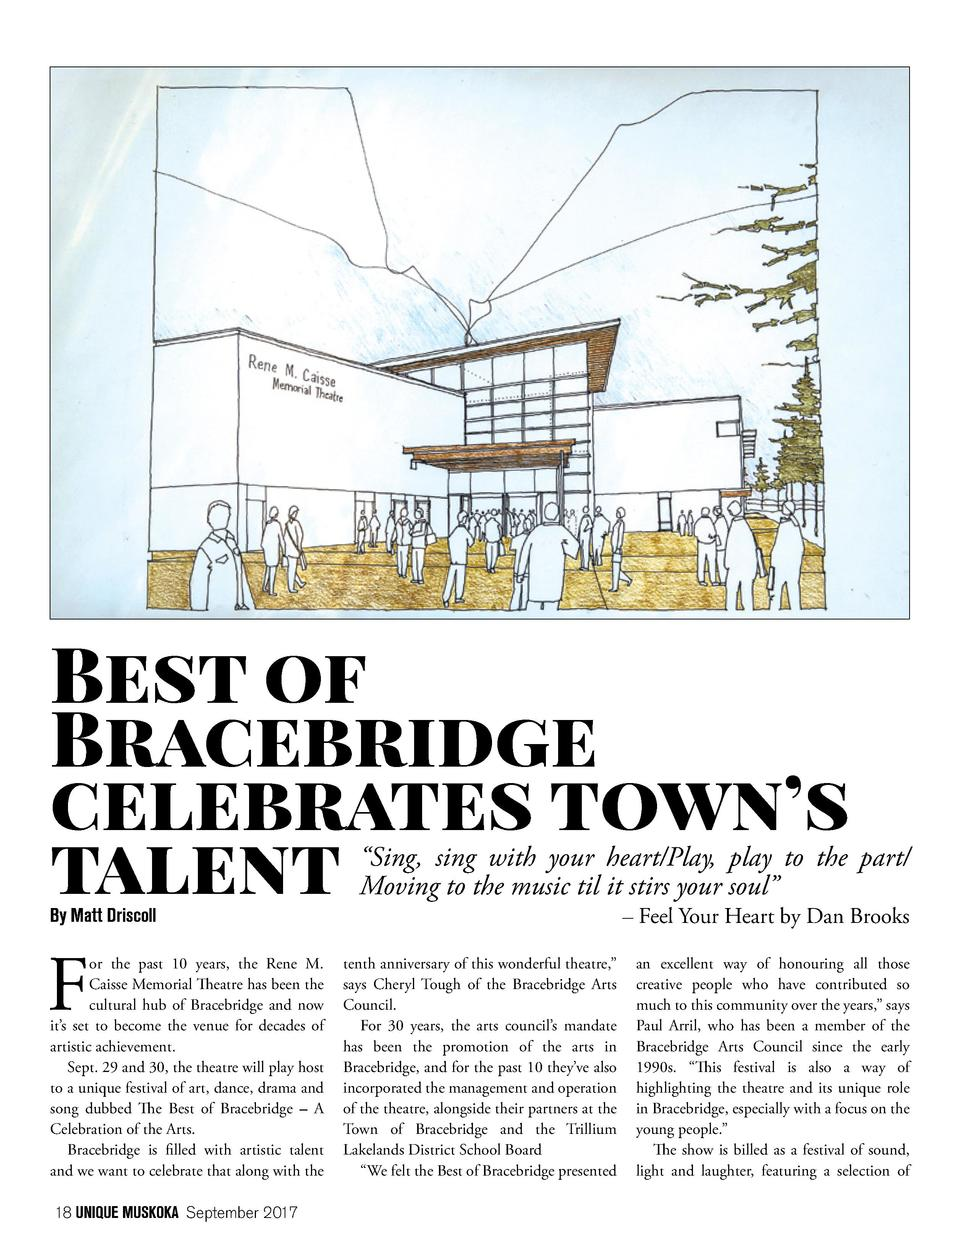 Best of Bracebridge celebrates town   s talent By Matt Driscoll  F  or the past 10 years, the Rene M. Caisse Memorial Thea...